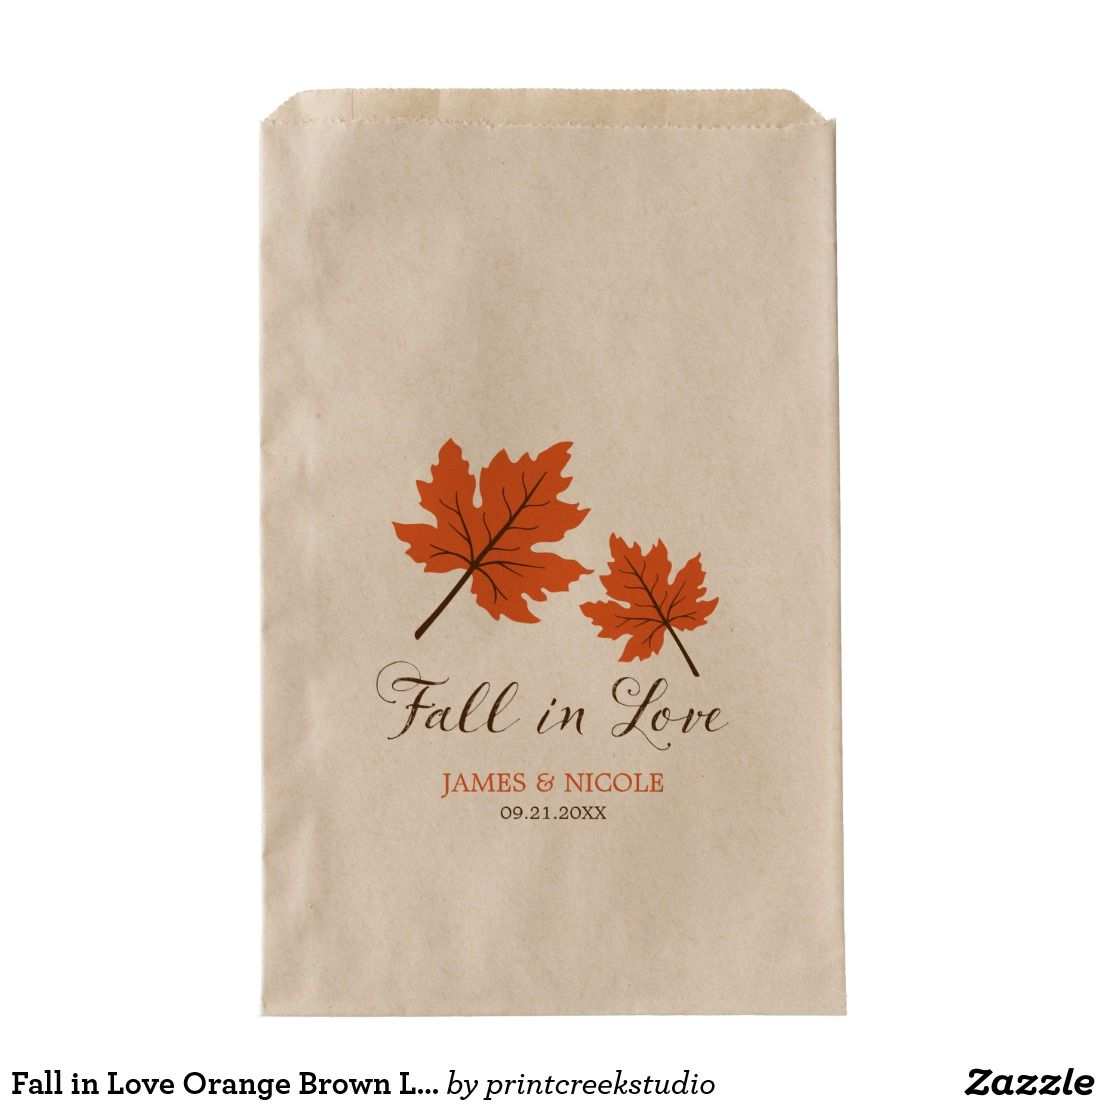 Fall in Love Orange Brown Leaves Wedding Favor Bag | Wedding favor ...